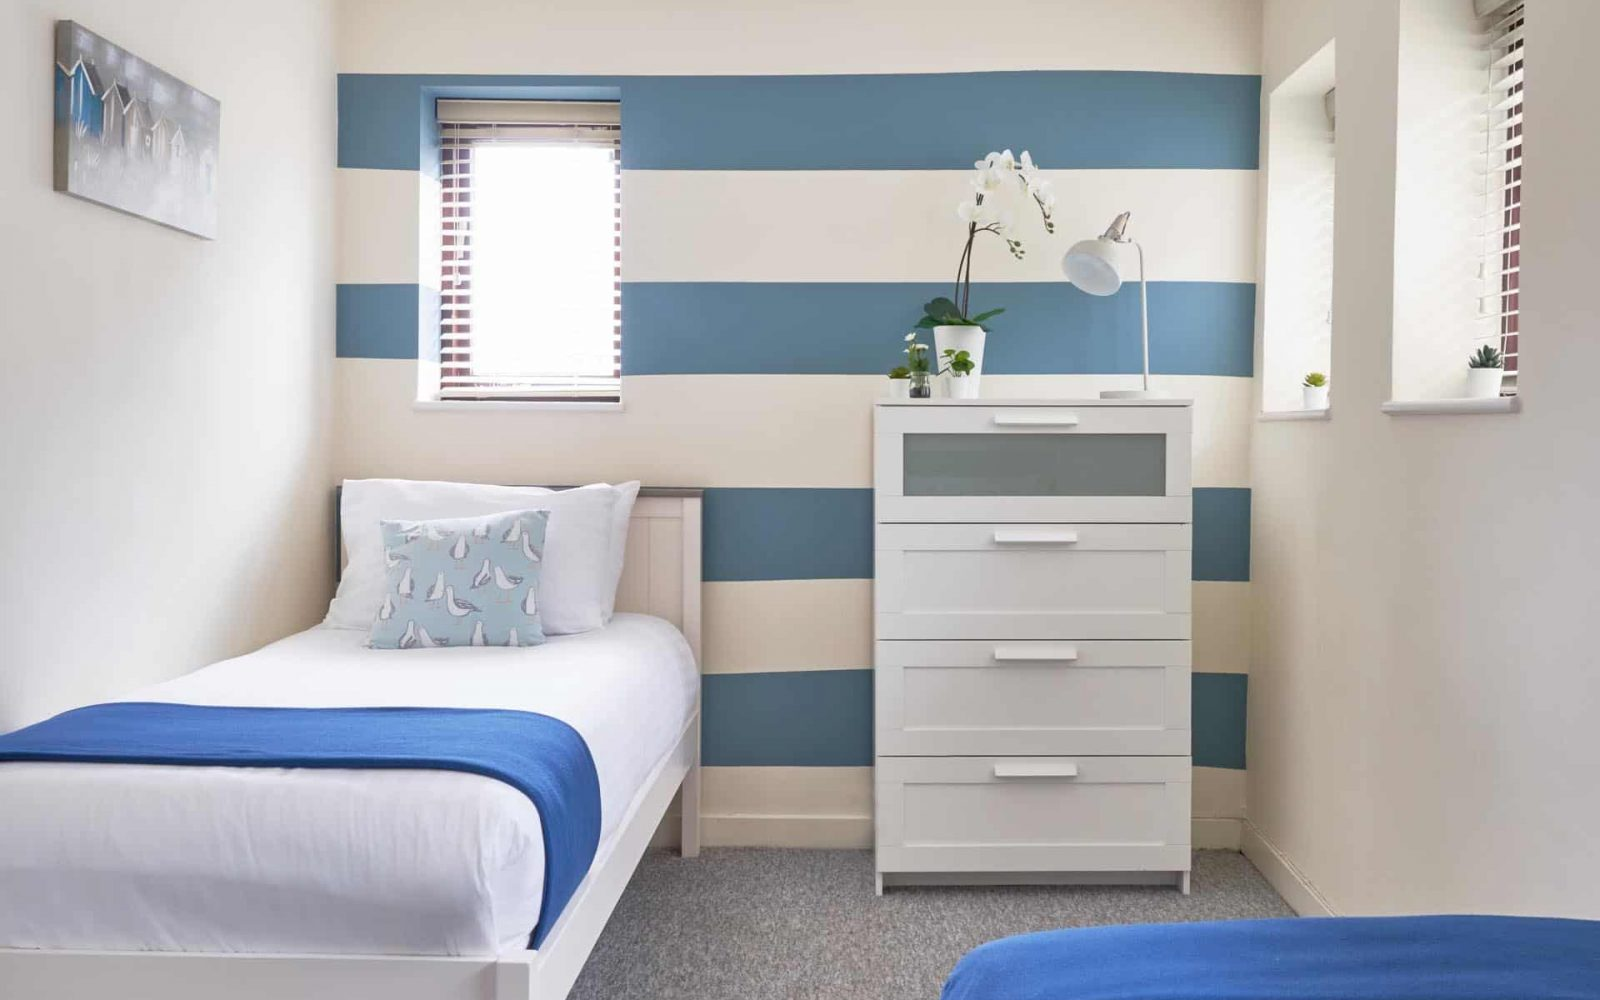 Single bed with draws and blue and white colours throughout the room